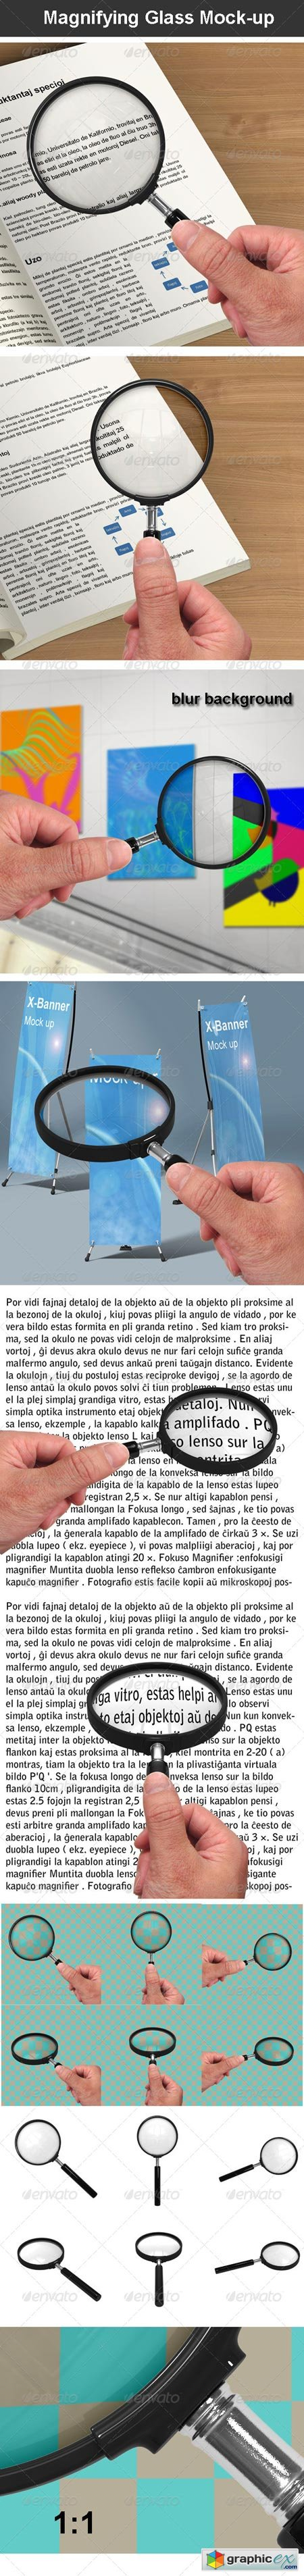 Magnifying Glass Mock-up 6907540